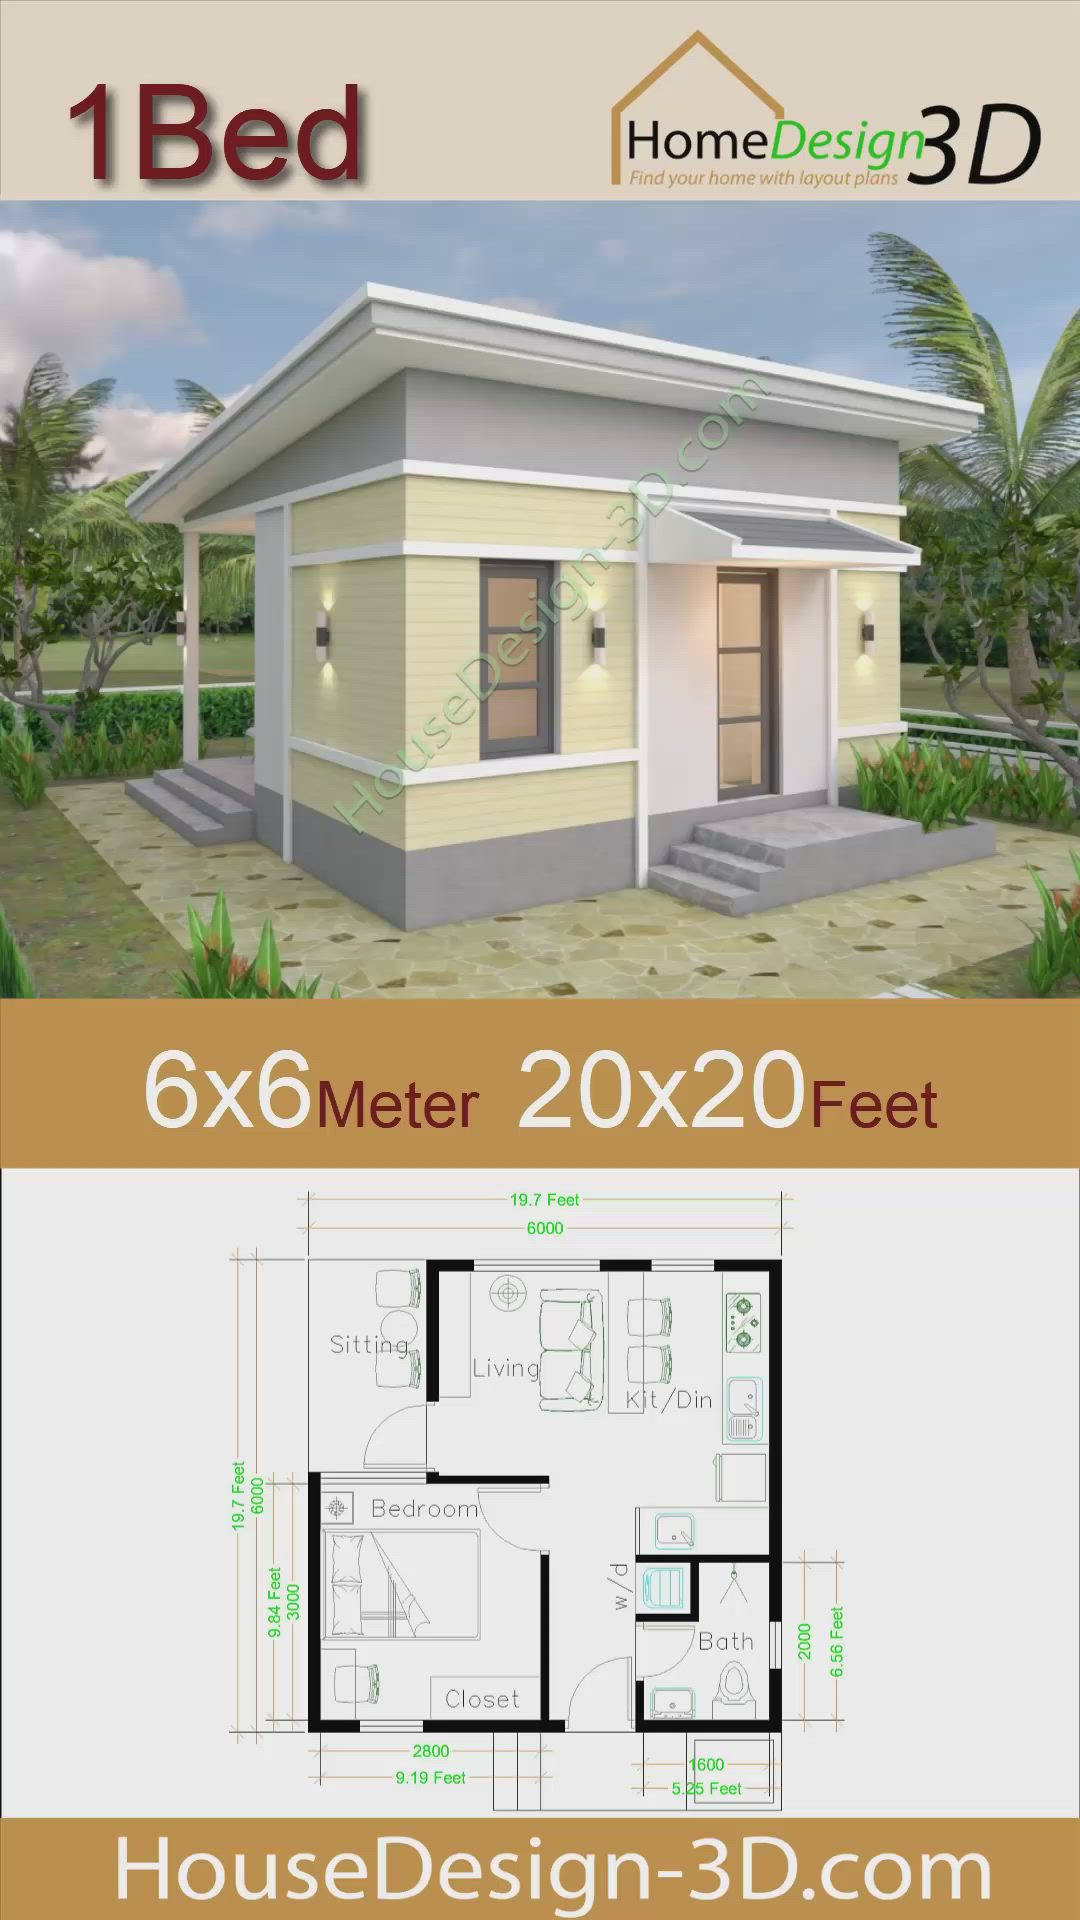 One Bedroom House Plans 6x6 With Shed Roof Video In 2020 Small House Design One Bedroom House Plans House Plans